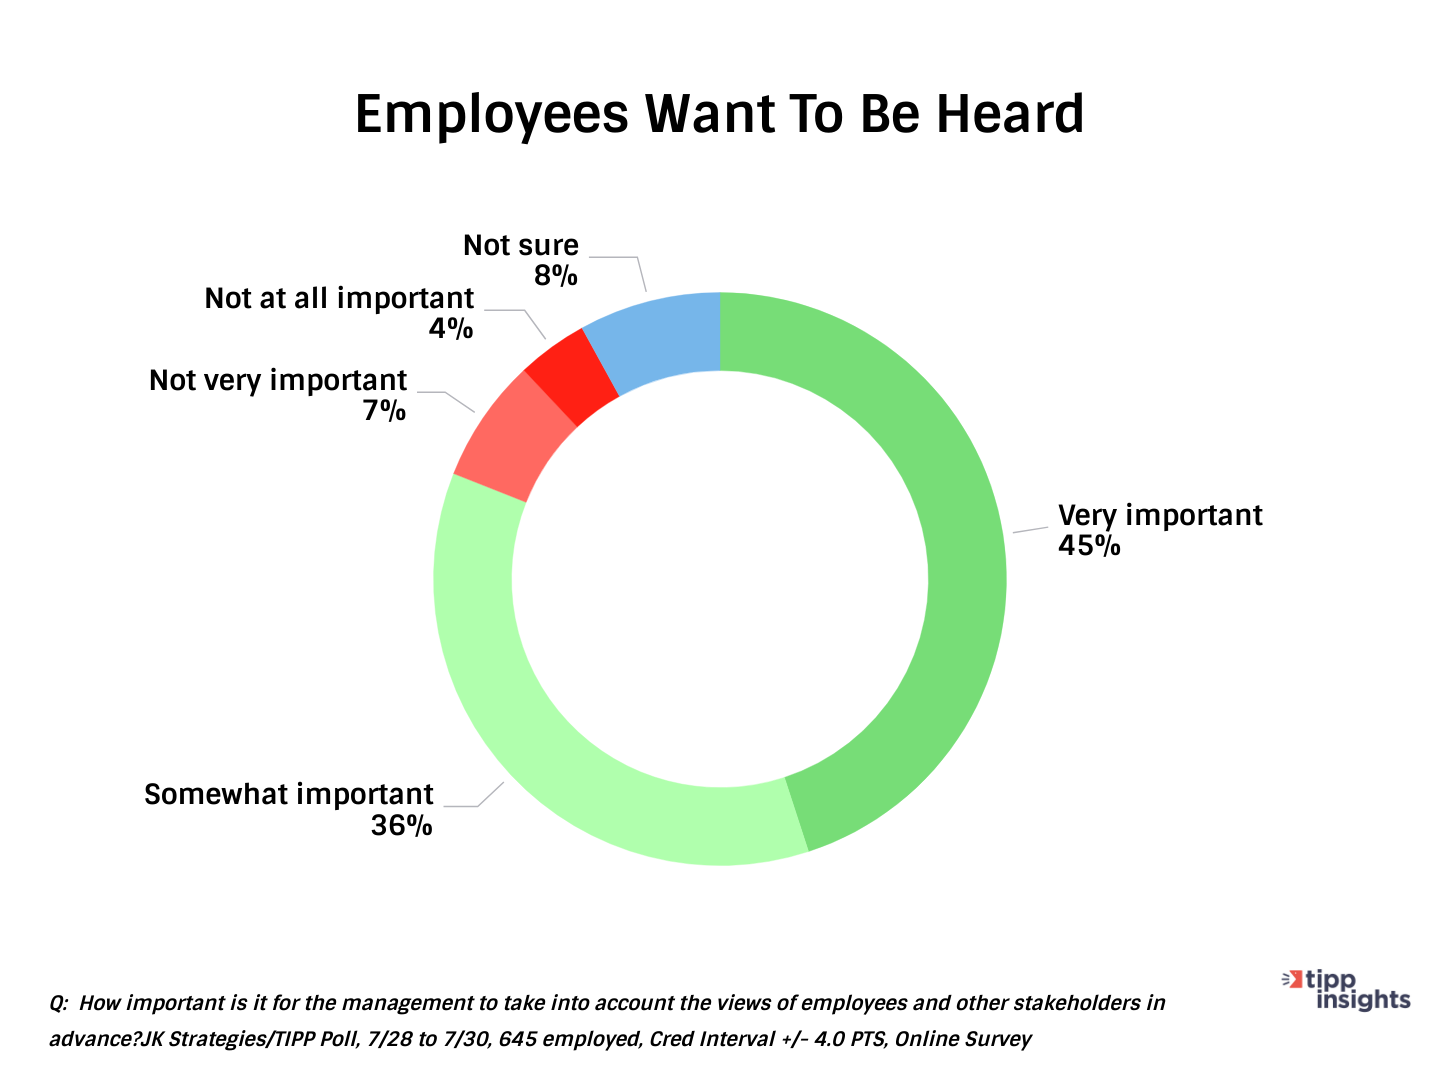 TIPP JK Strategies Poll Results American Employees want to be heard